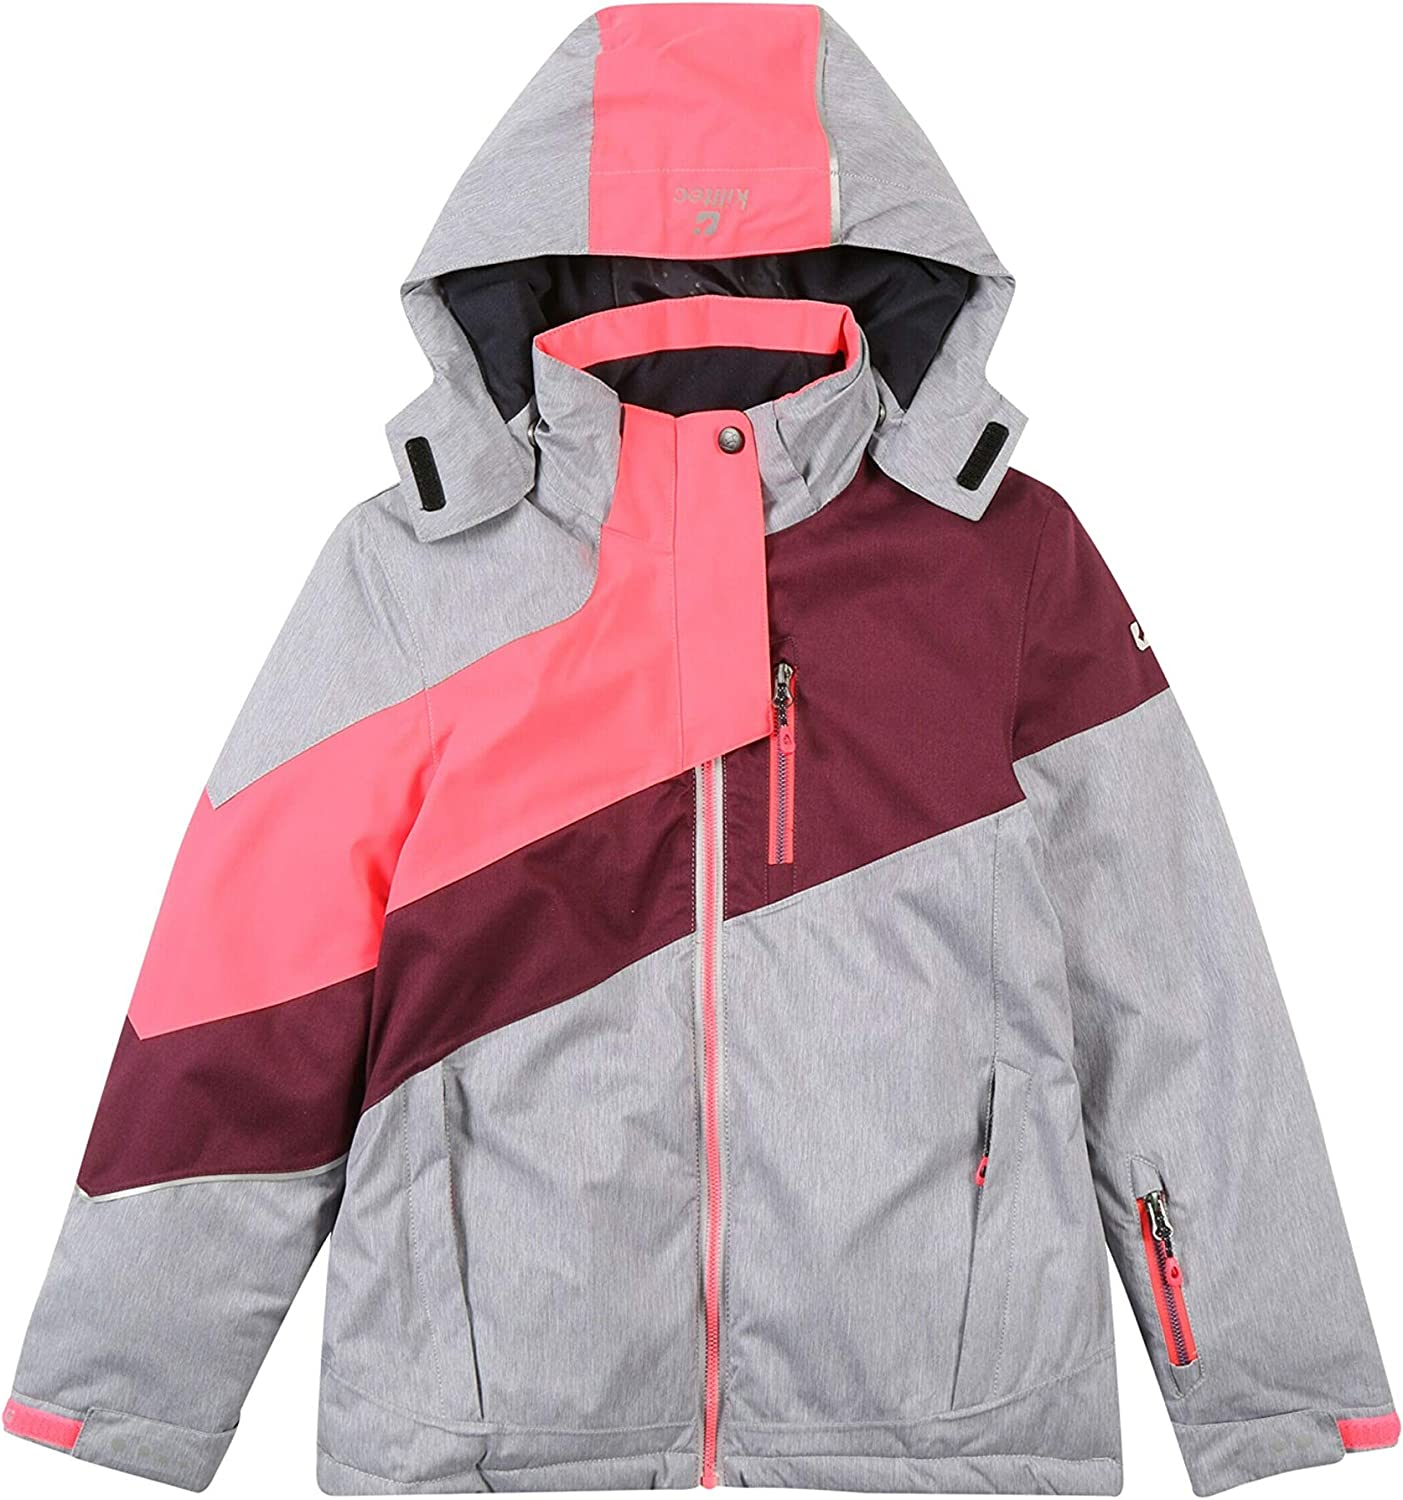 killtec Girls Helina Jr Functional Outdoor Winter Jacket with Hood//Waterproof//Hydrostatic Head 10000 mm